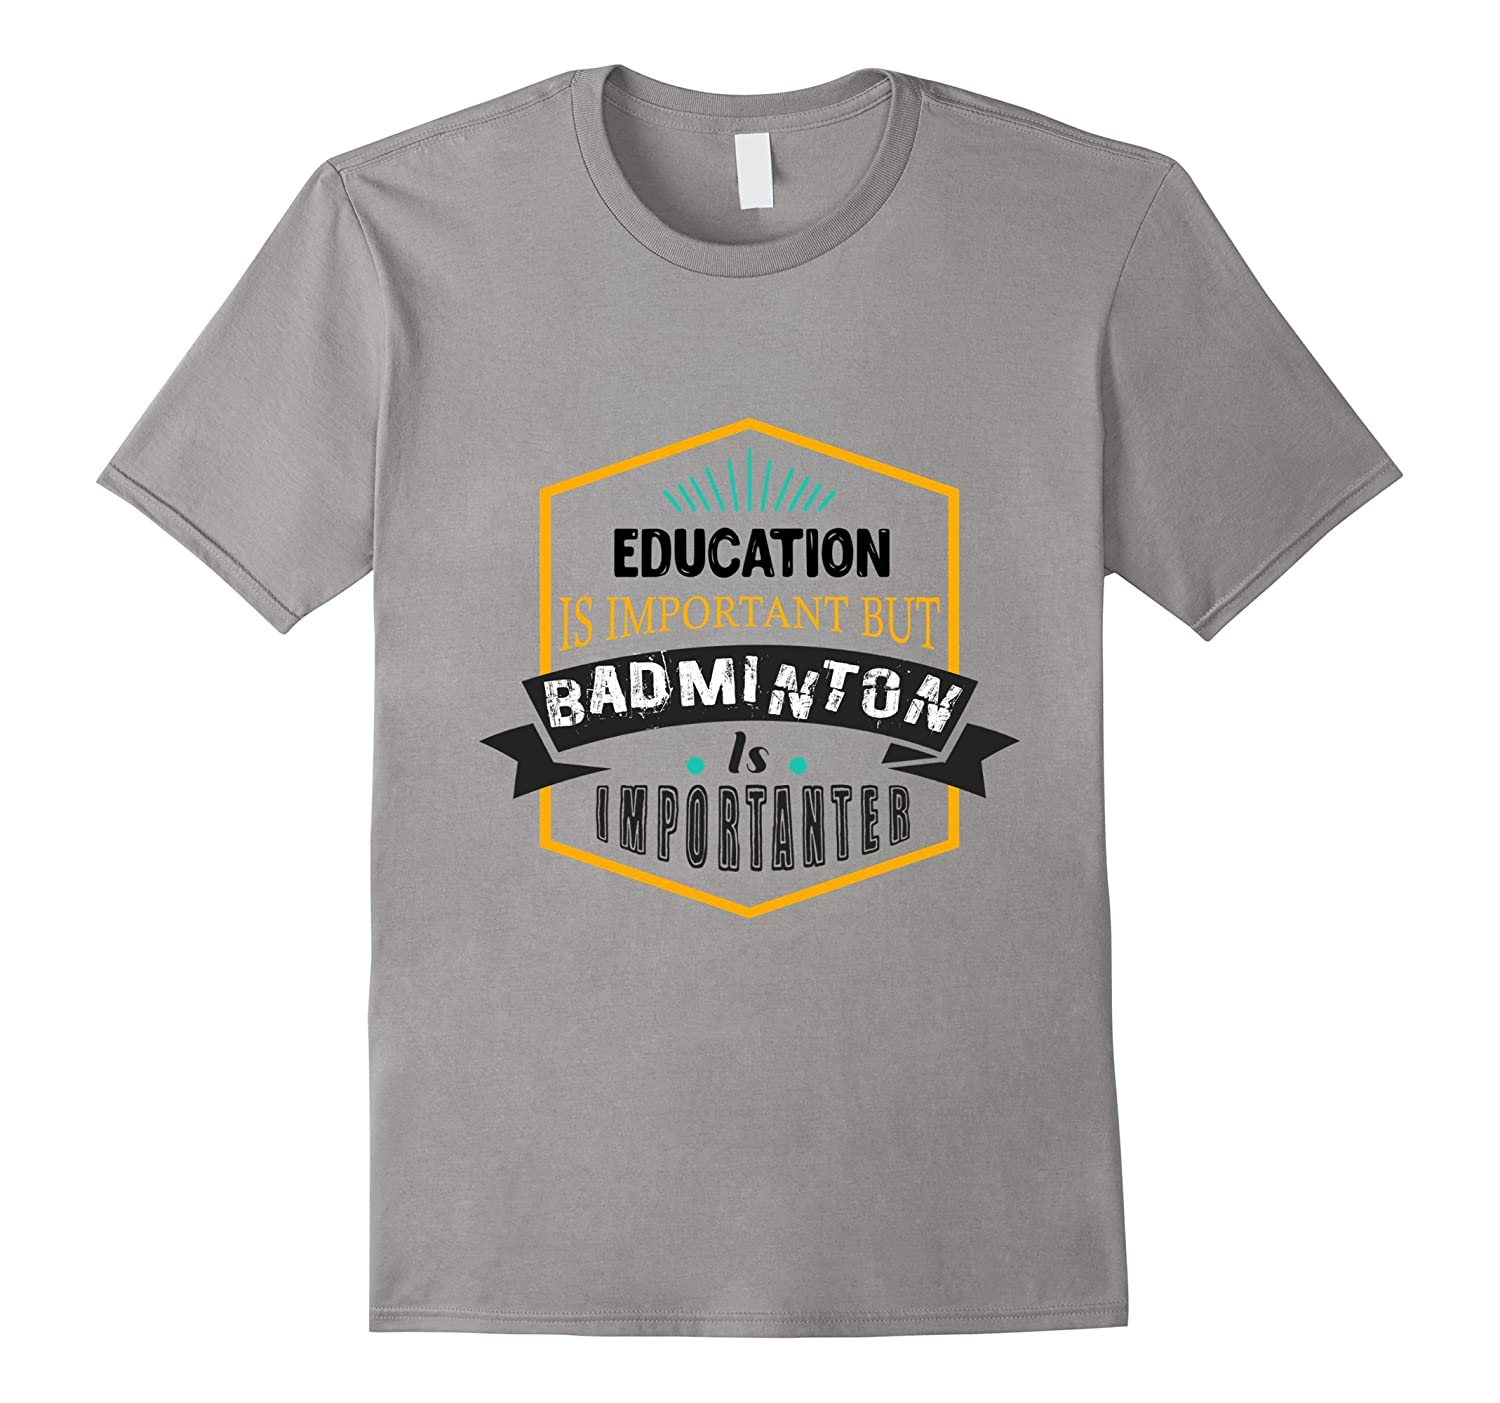 Badminton Funny T-shirt Gift for Men, Woman, Kid-FL